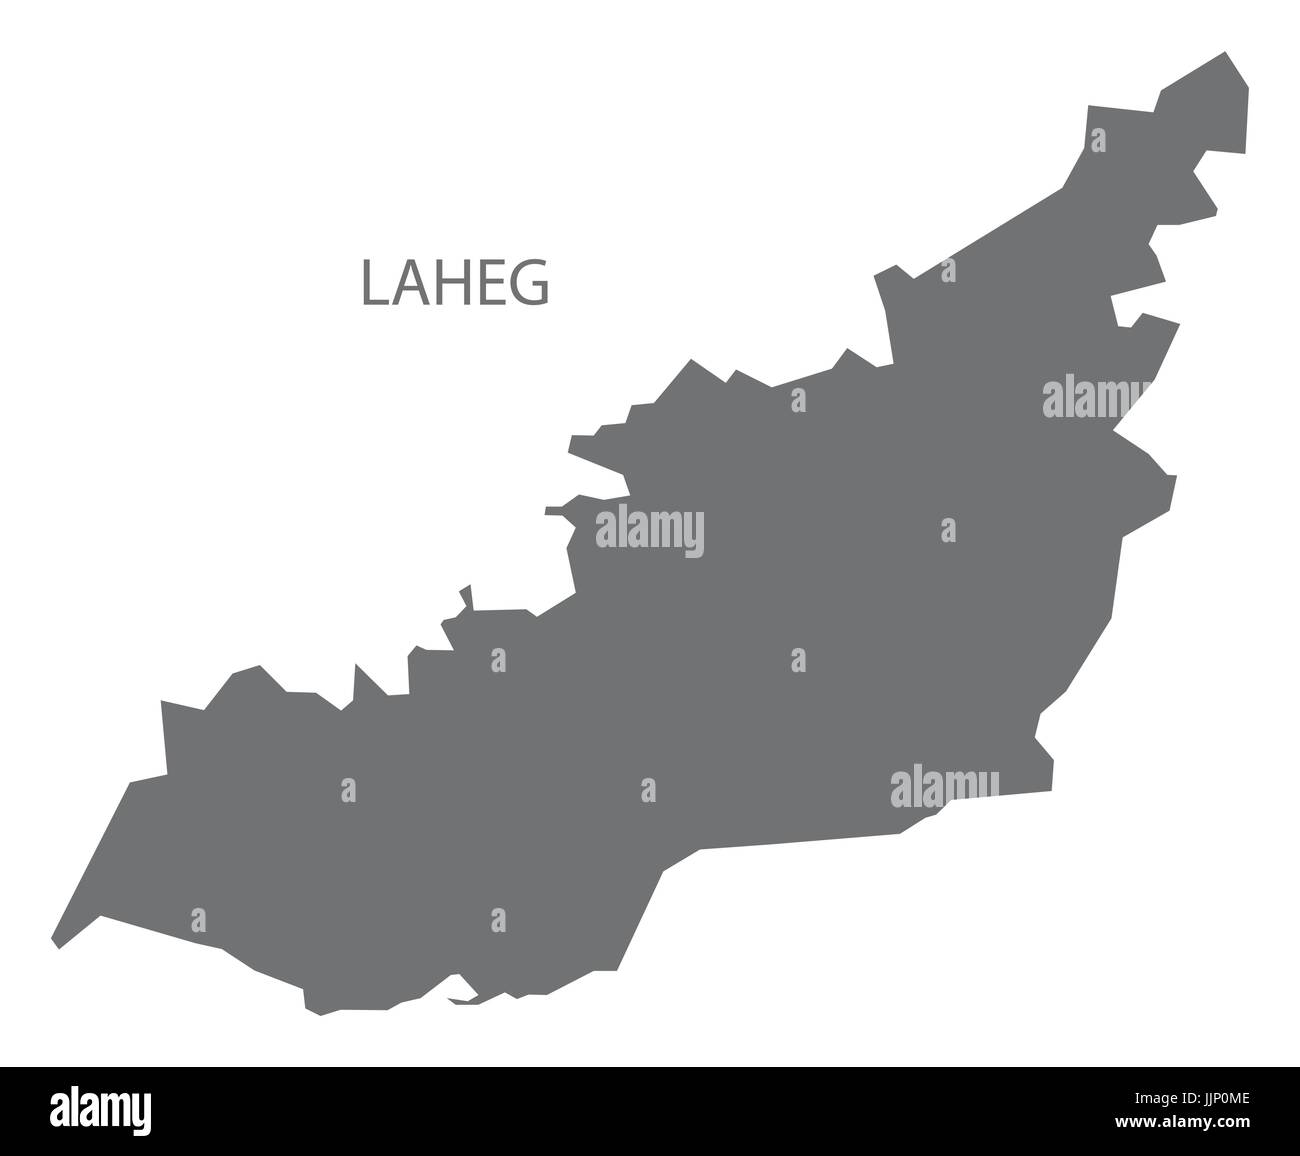 Laheg Yemen governorate map grey illustration silhouette shape - Stock Image